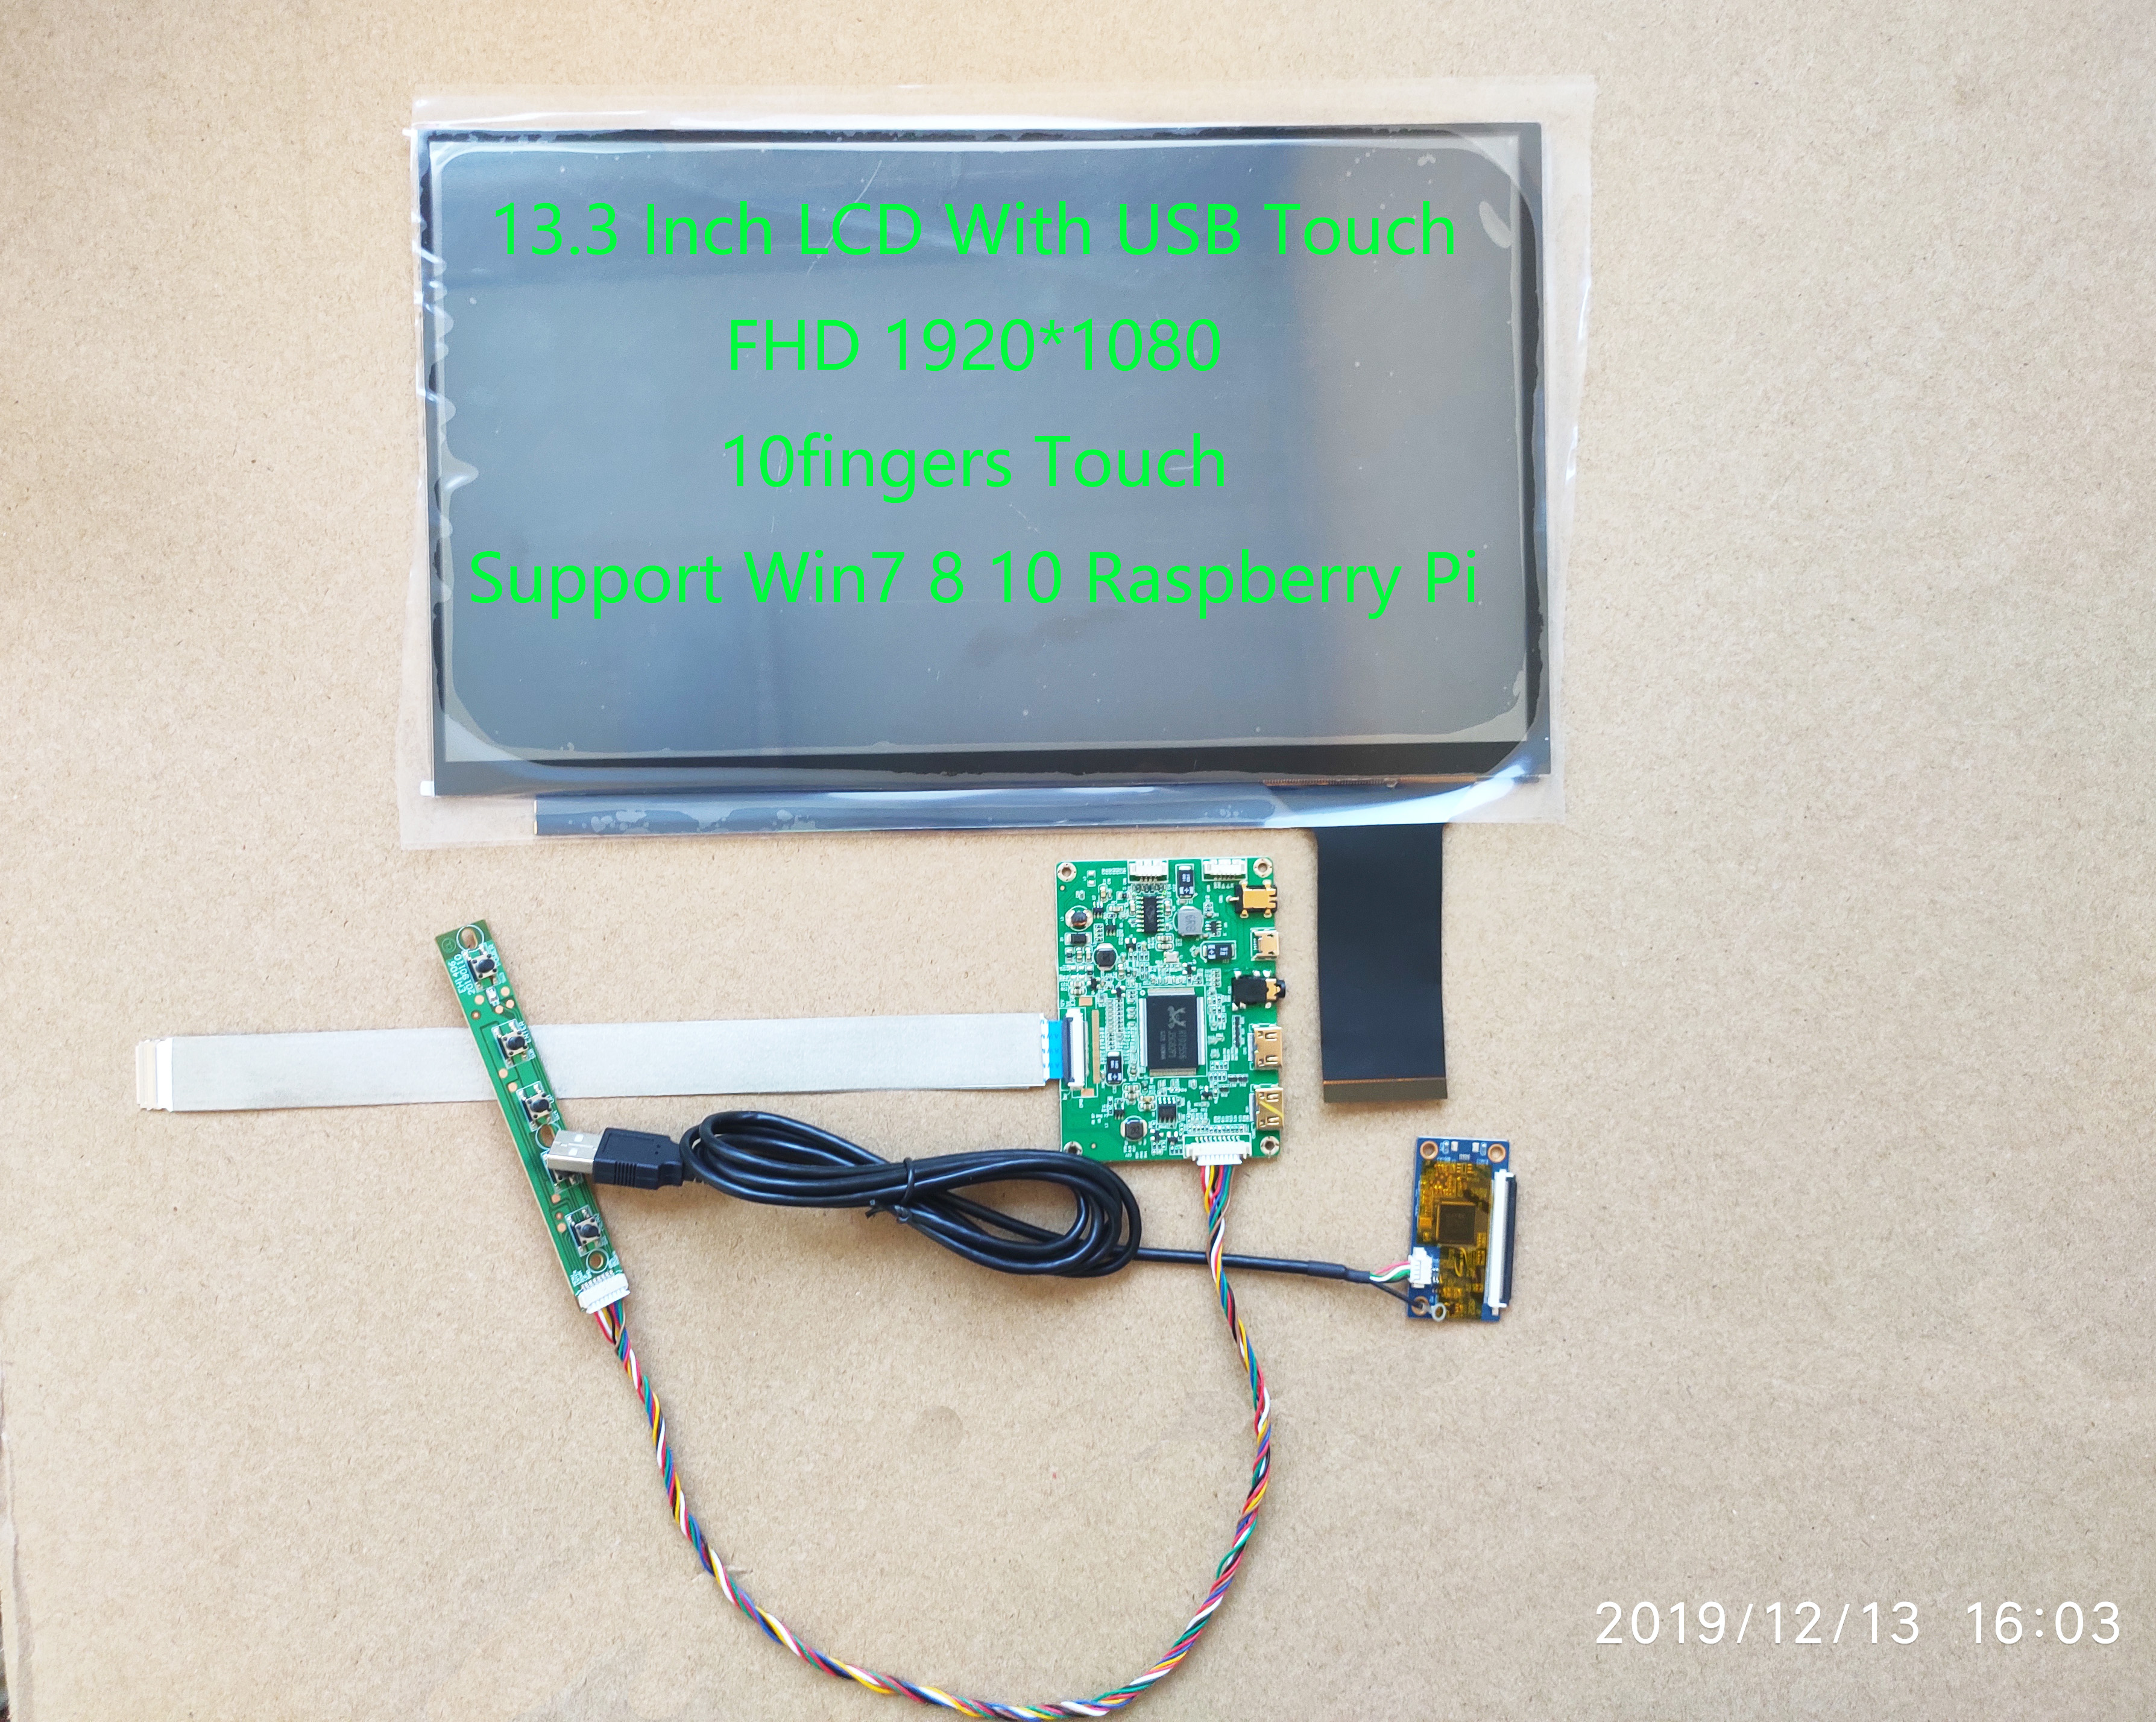 13.3inch Lcd With Driver And Touch 10points Support Win7 Win8 Win10 Raspberry PI